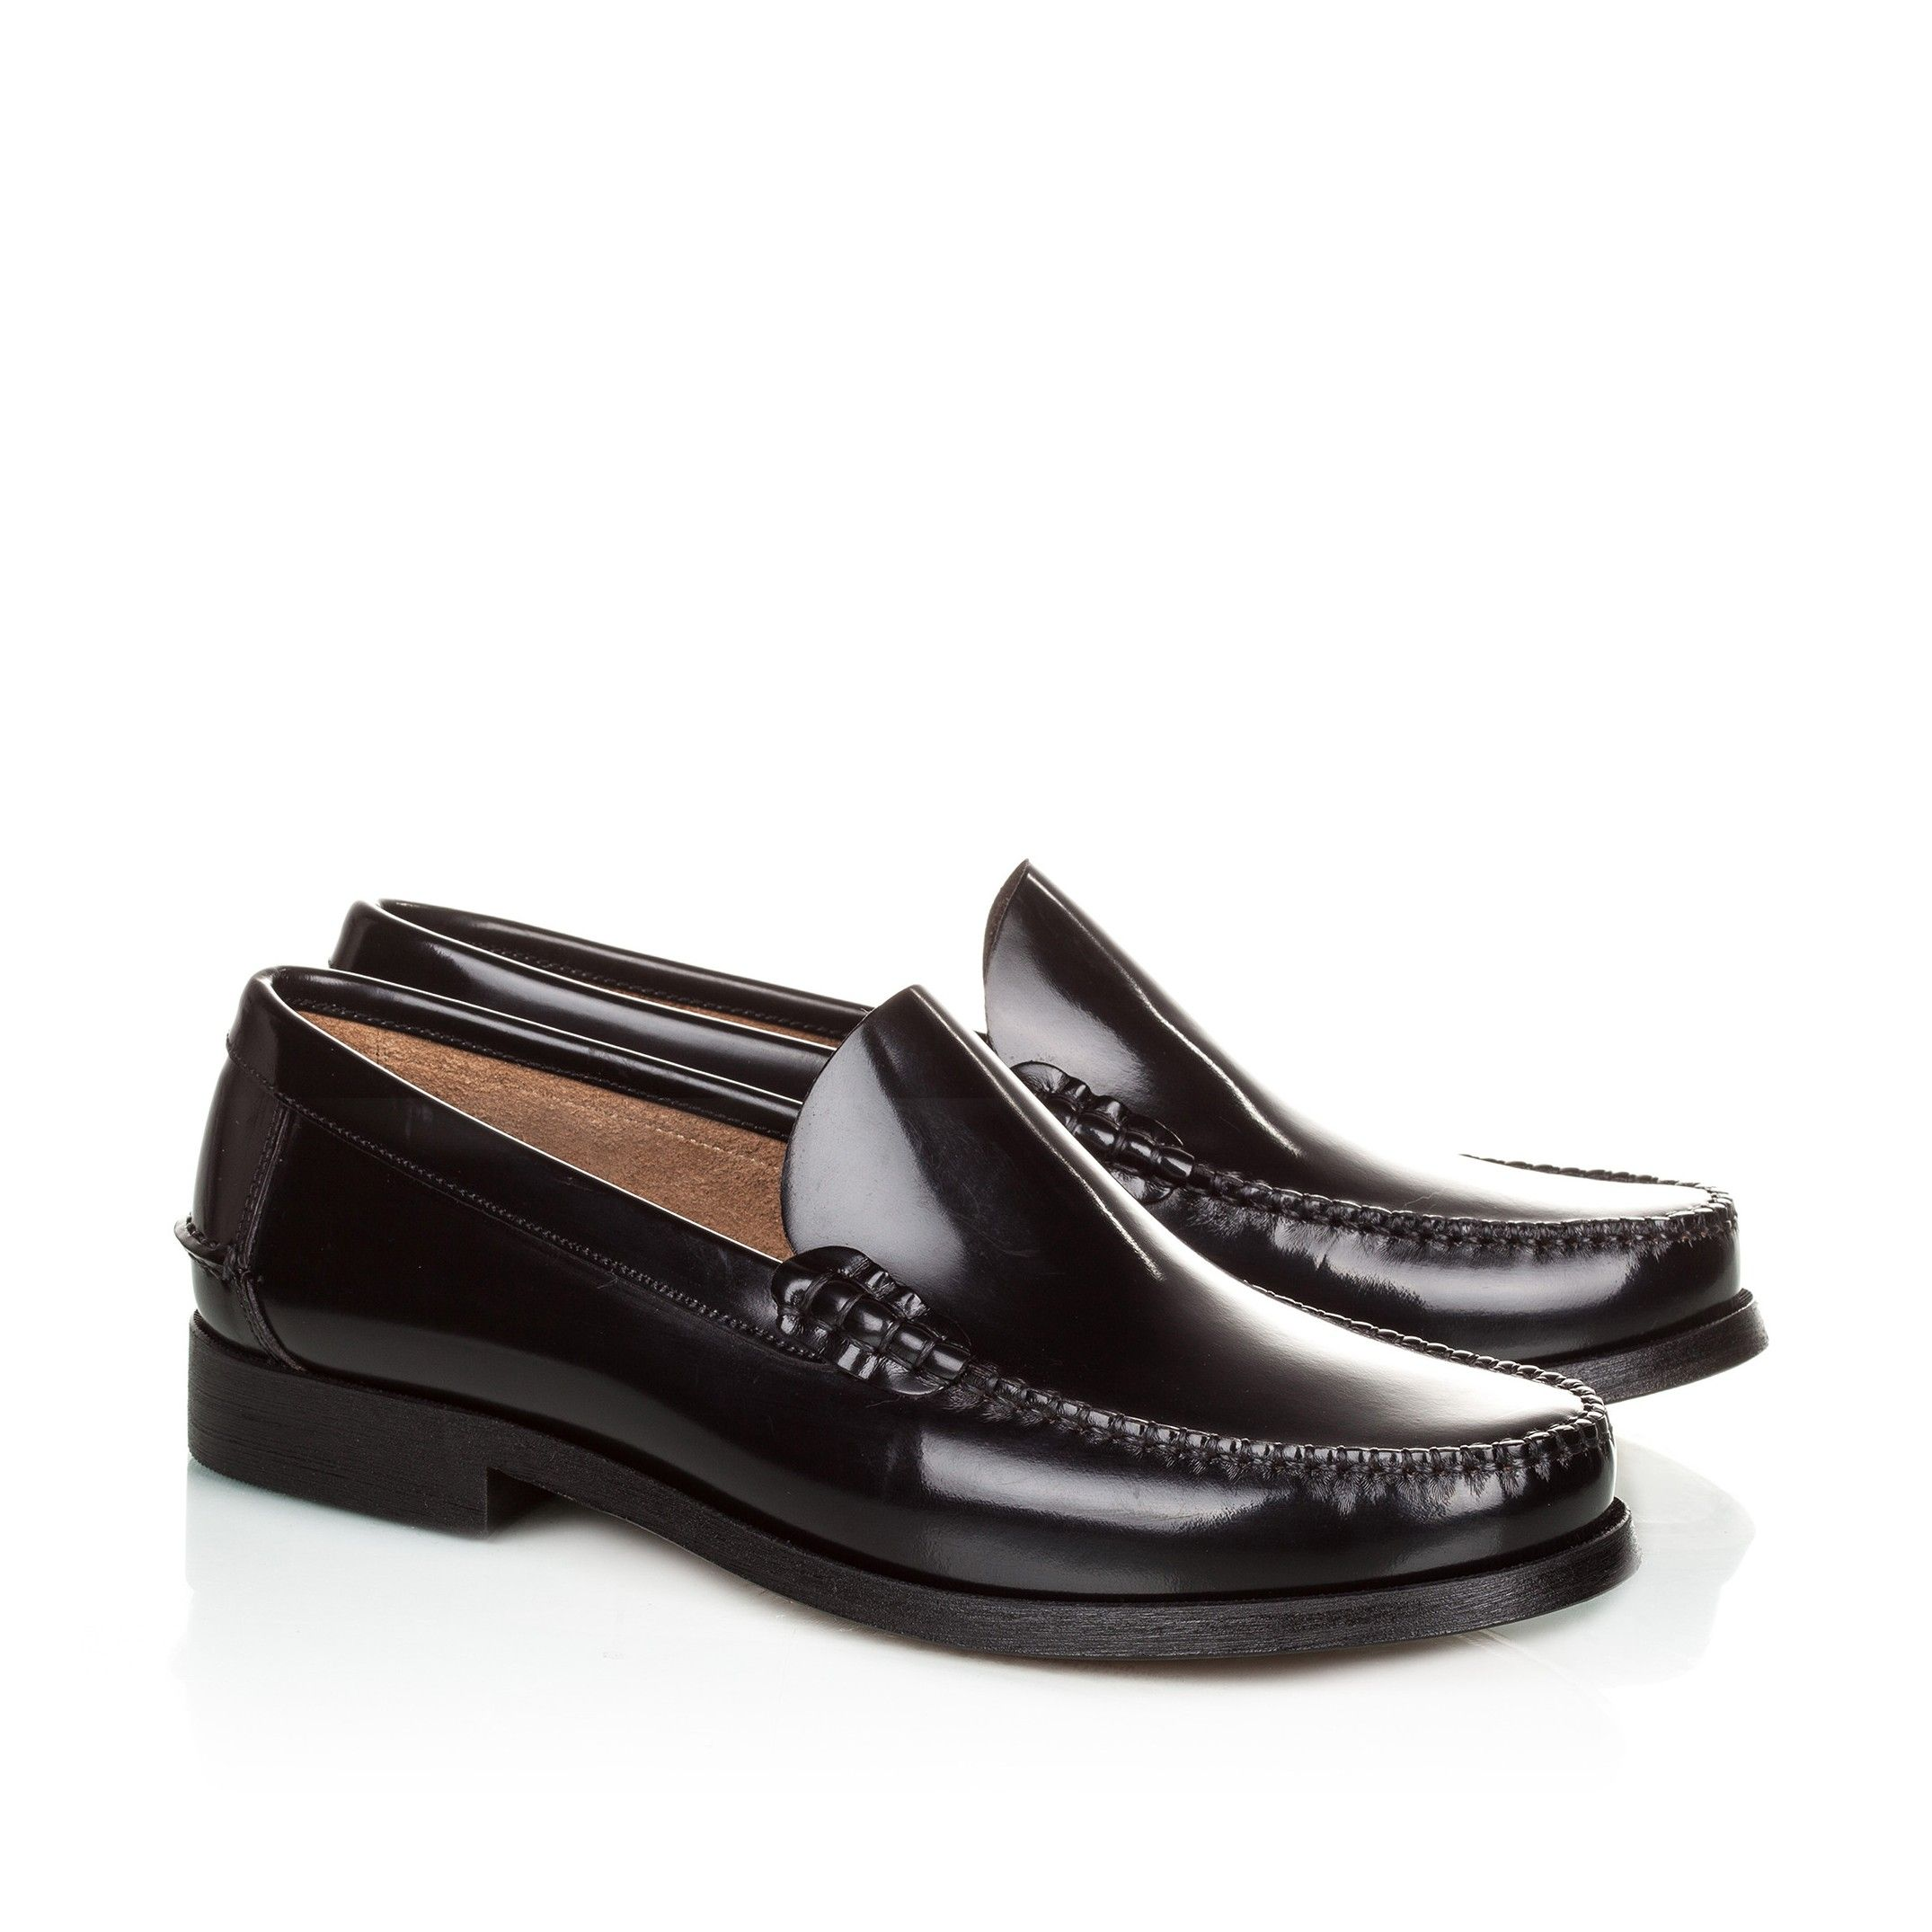 Castellanisimos Leather Moccasins Elegant and Comfortable Classic Shoes